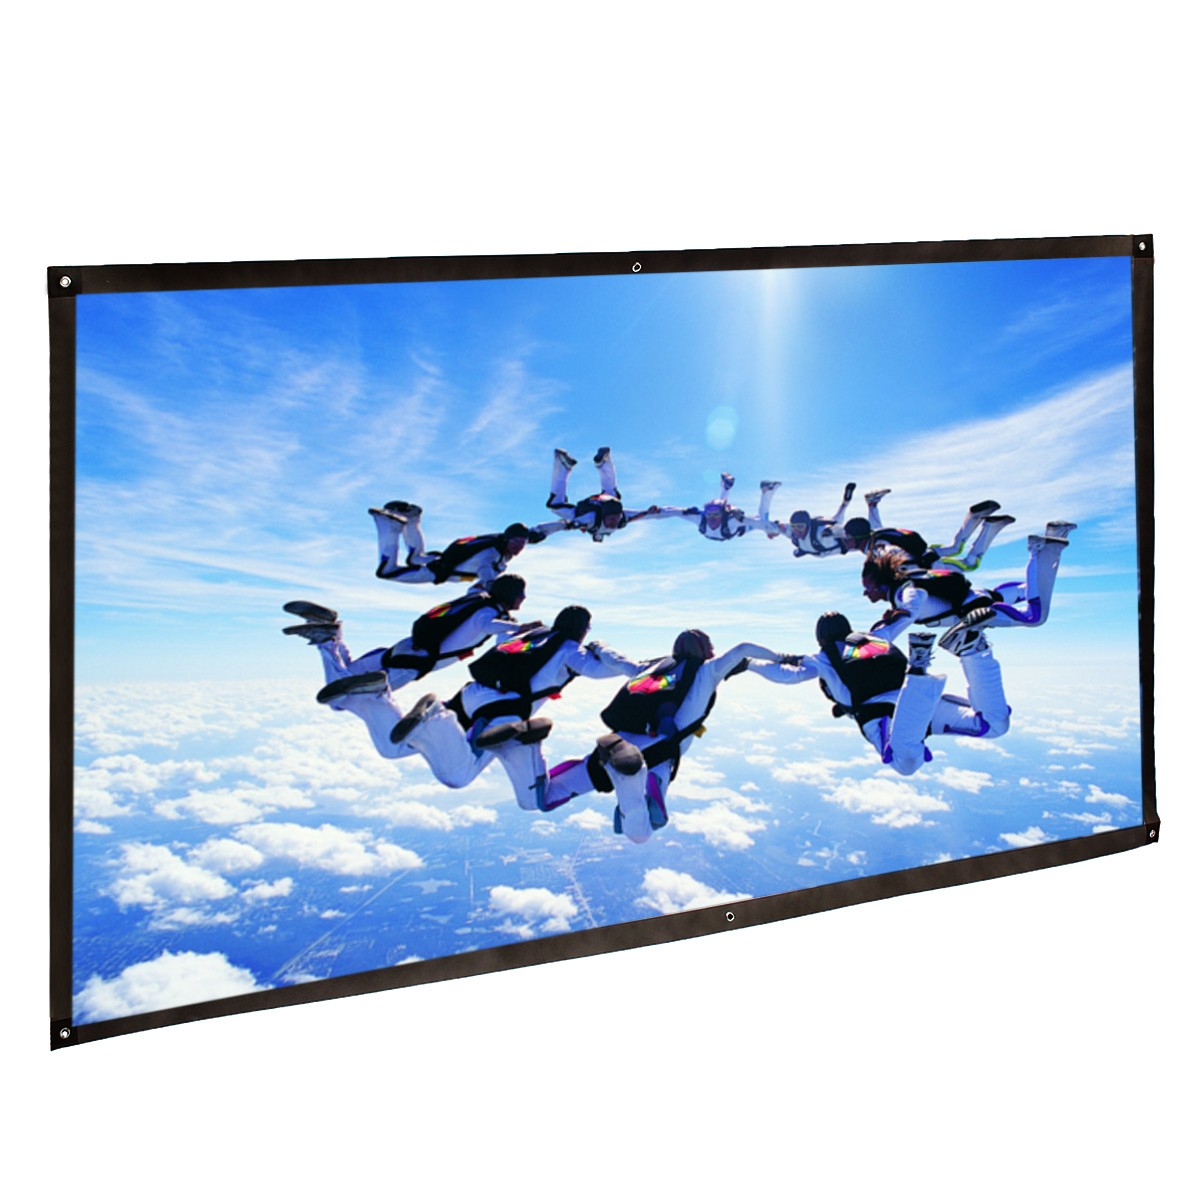 Portable 150 Inch 16:9 Fabric Matte Projector Projection Screen To HD Projector 330*185CM everyone gain projection screen 40 inch 16 9 table screen projector hd screen portable easy carry proyector screen fabric